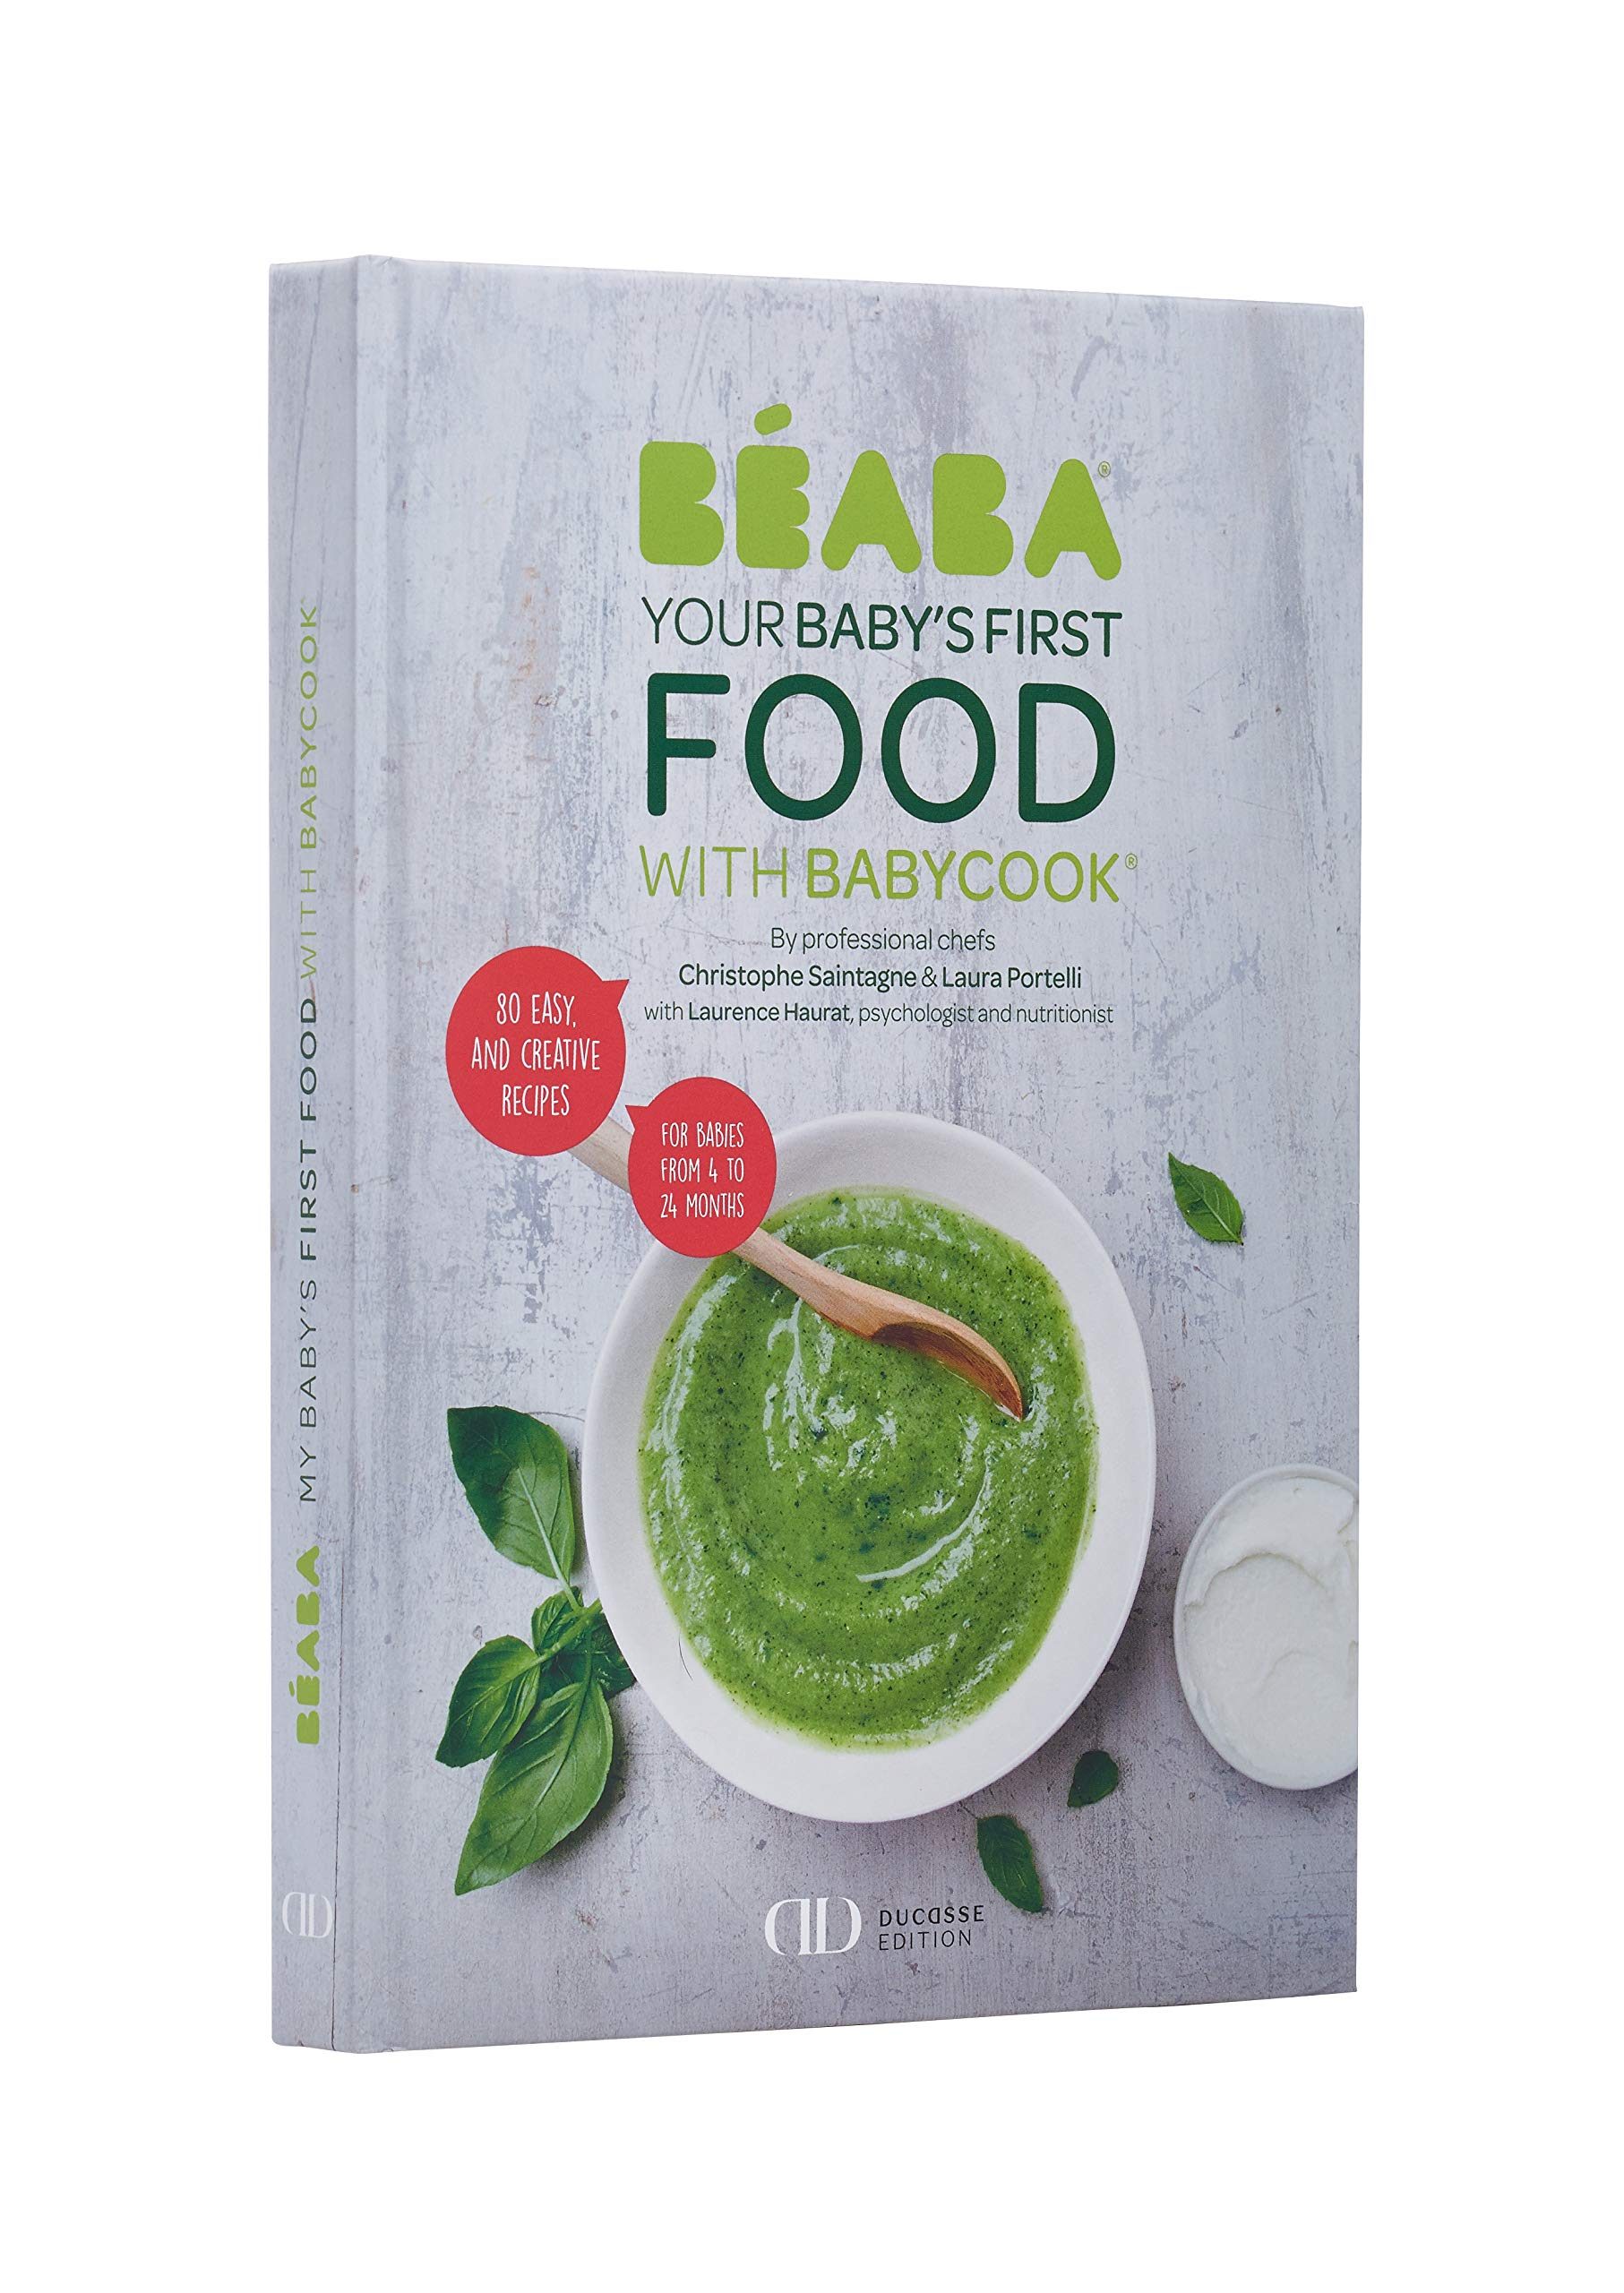 BEABA Cookbook: Baby's First Foods with Babycook - Alain Ducasse Edition (Includes 80 Recipes for Babies from 4 to 24 Months)